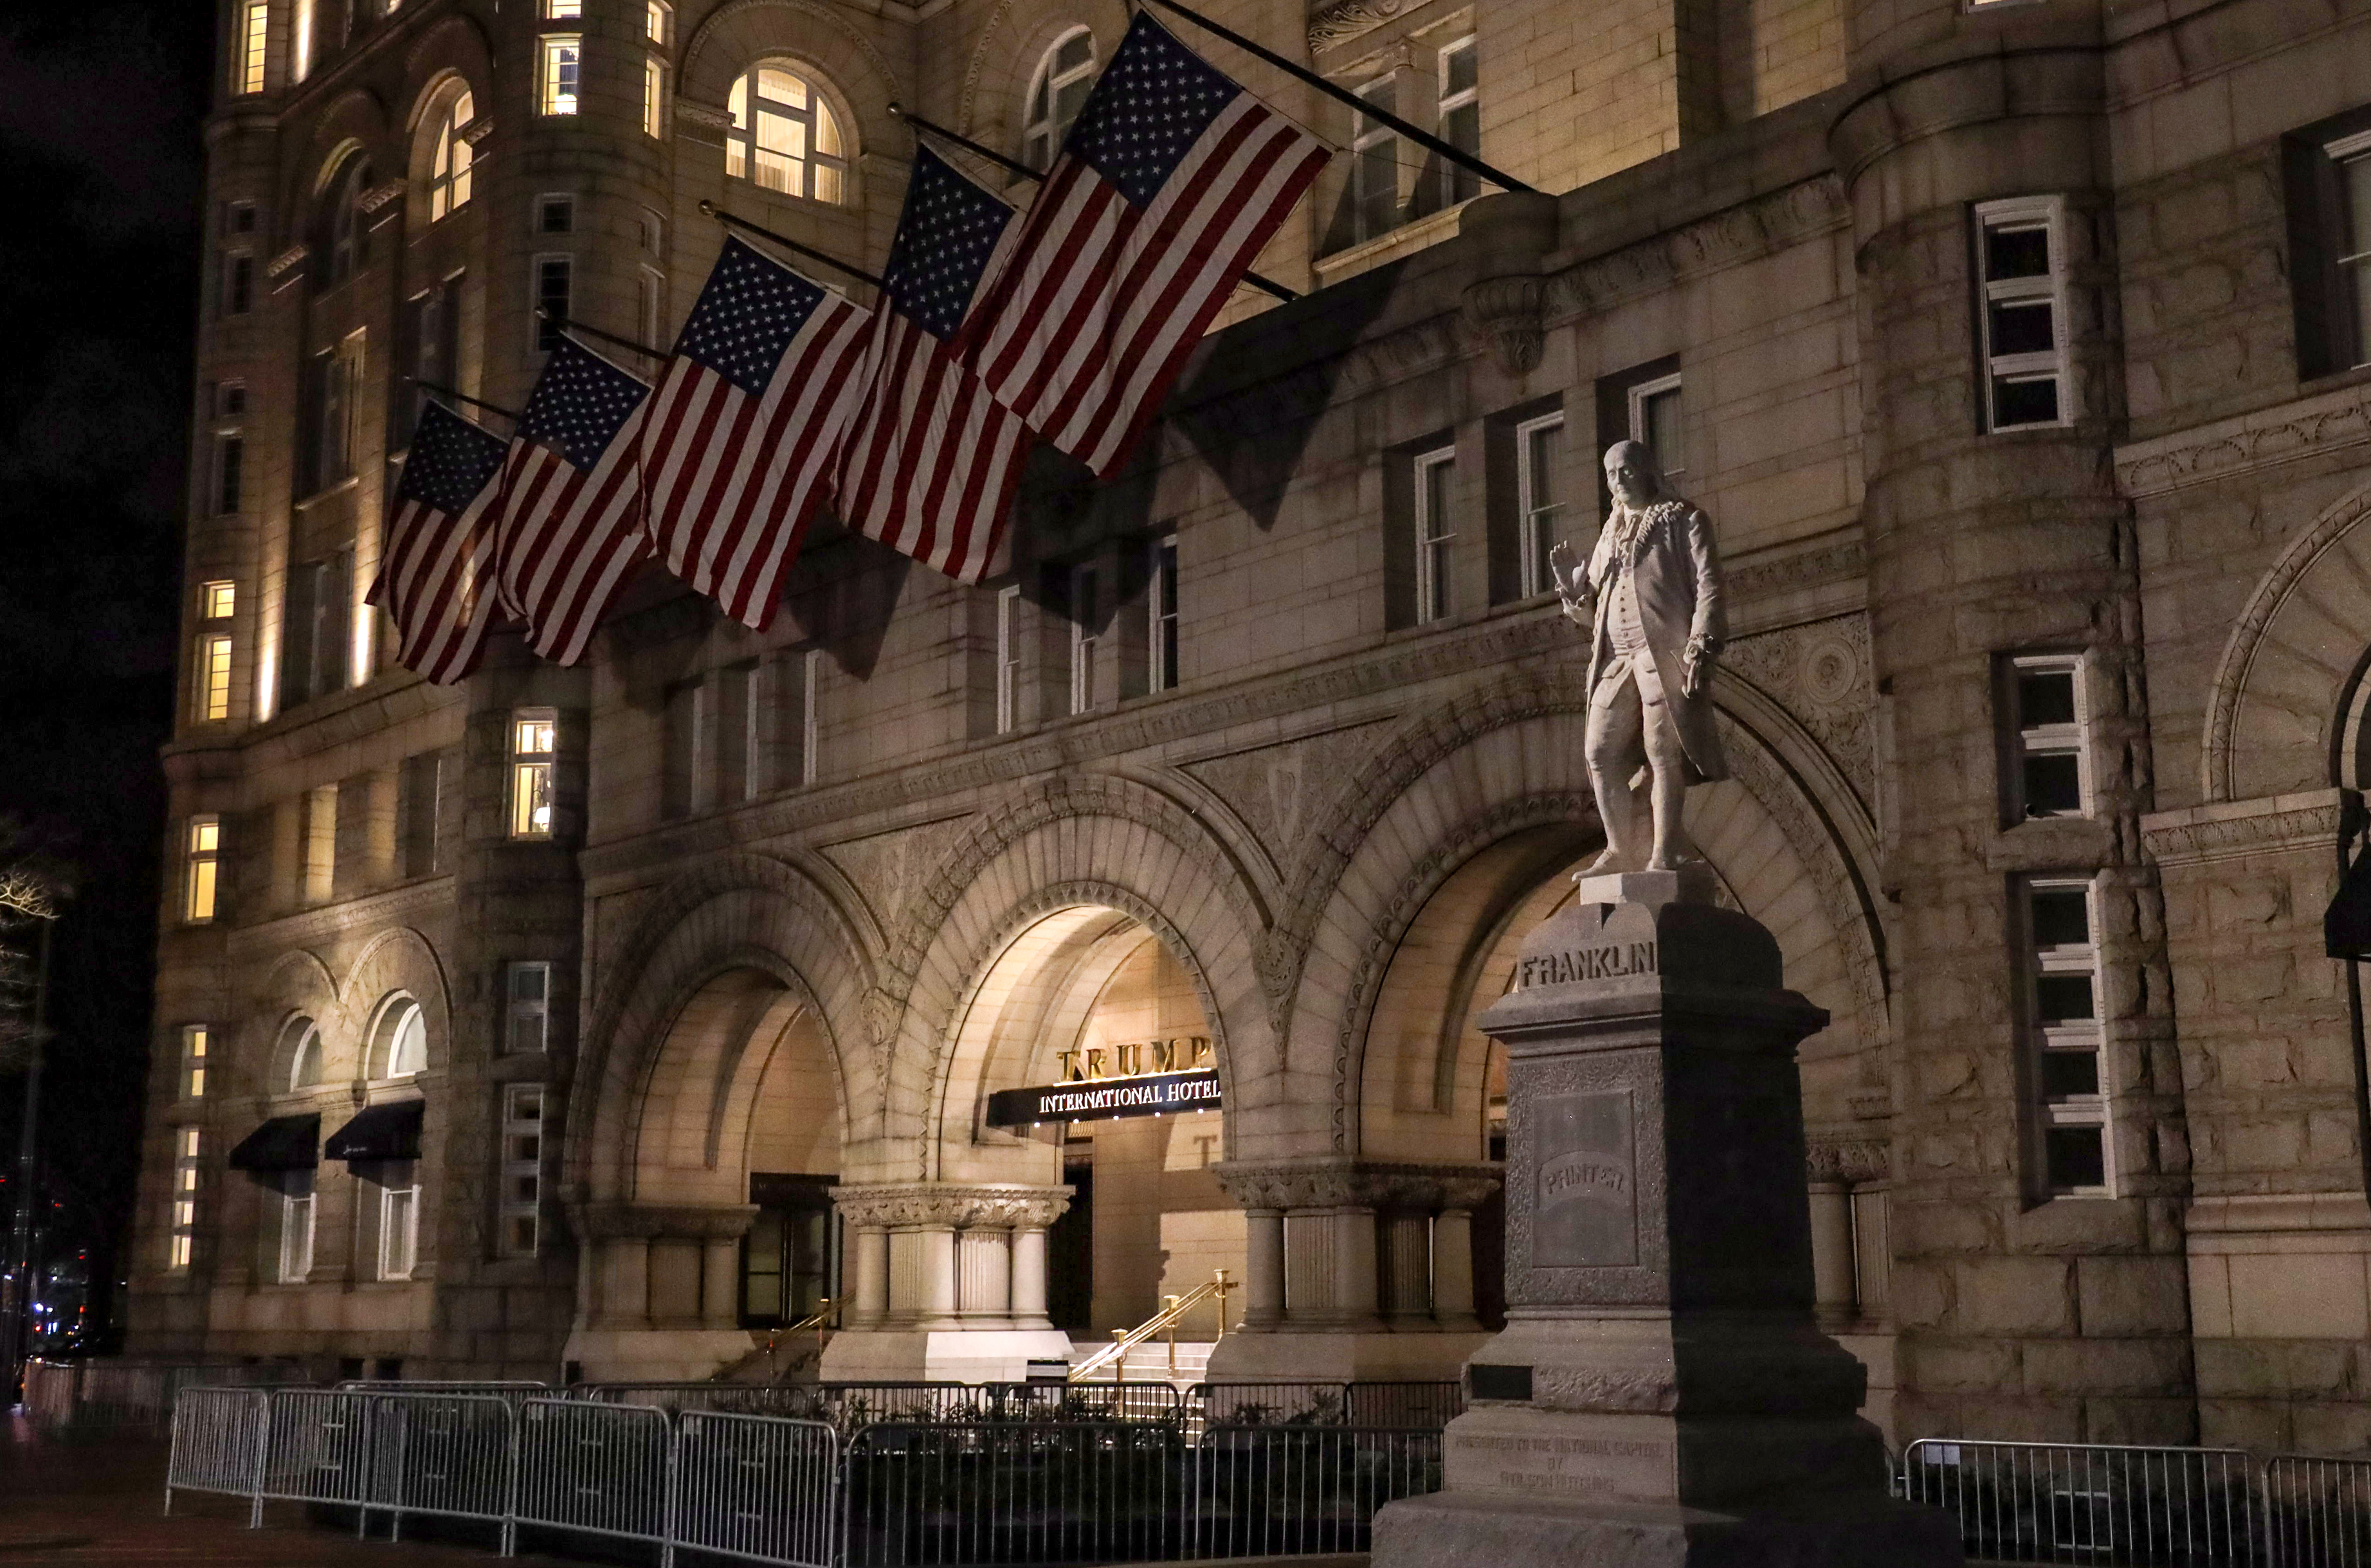 The Trump International Hotel in Washington, D.C. on March 22, 2019.